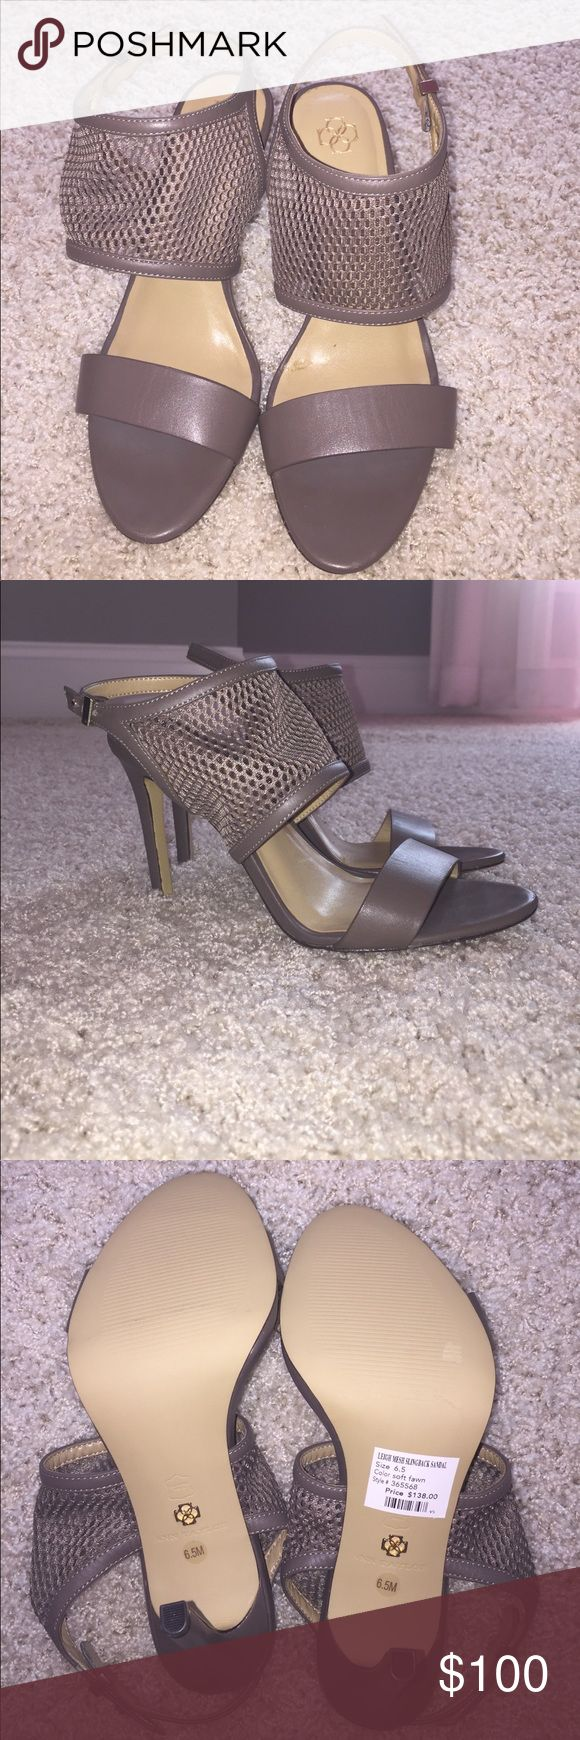 Ann Taylor Leigh Mesh Slingback Sandal Never worn, very soft leather and padded heels Ann Taylor Shoes Heels